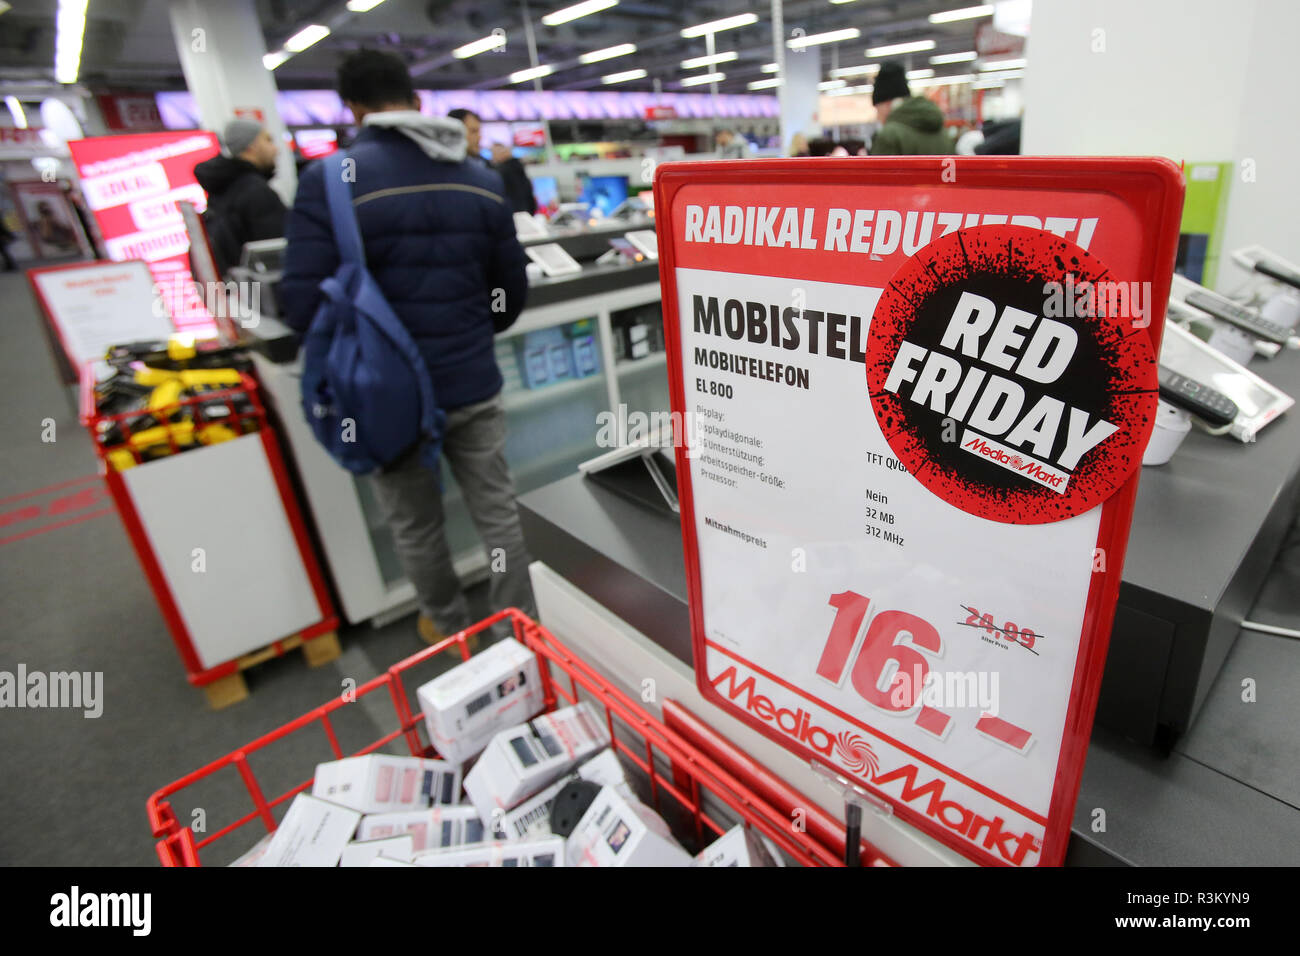 Hamburg Germany 23rd Nov 2018 Red Friday Is Written On A Sticker In A Media Markt